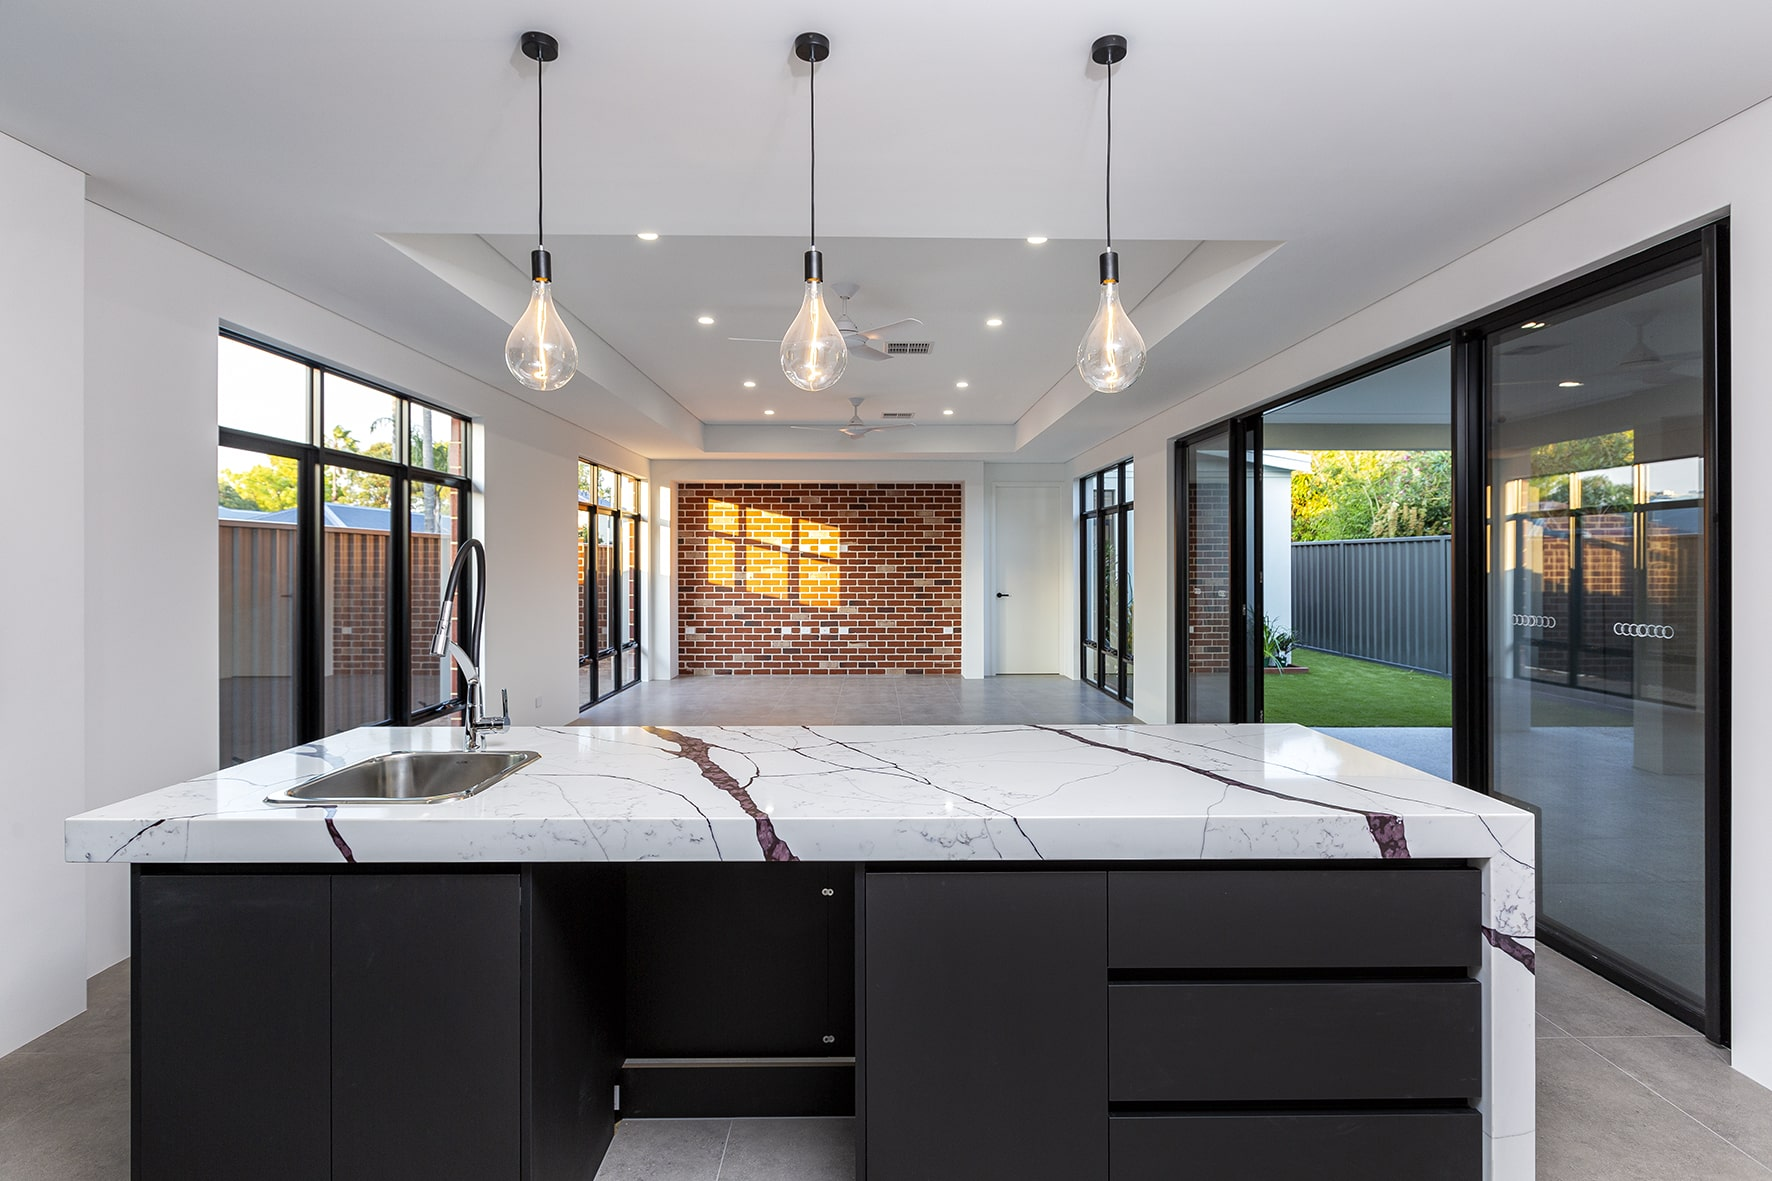 About-Trio Homes